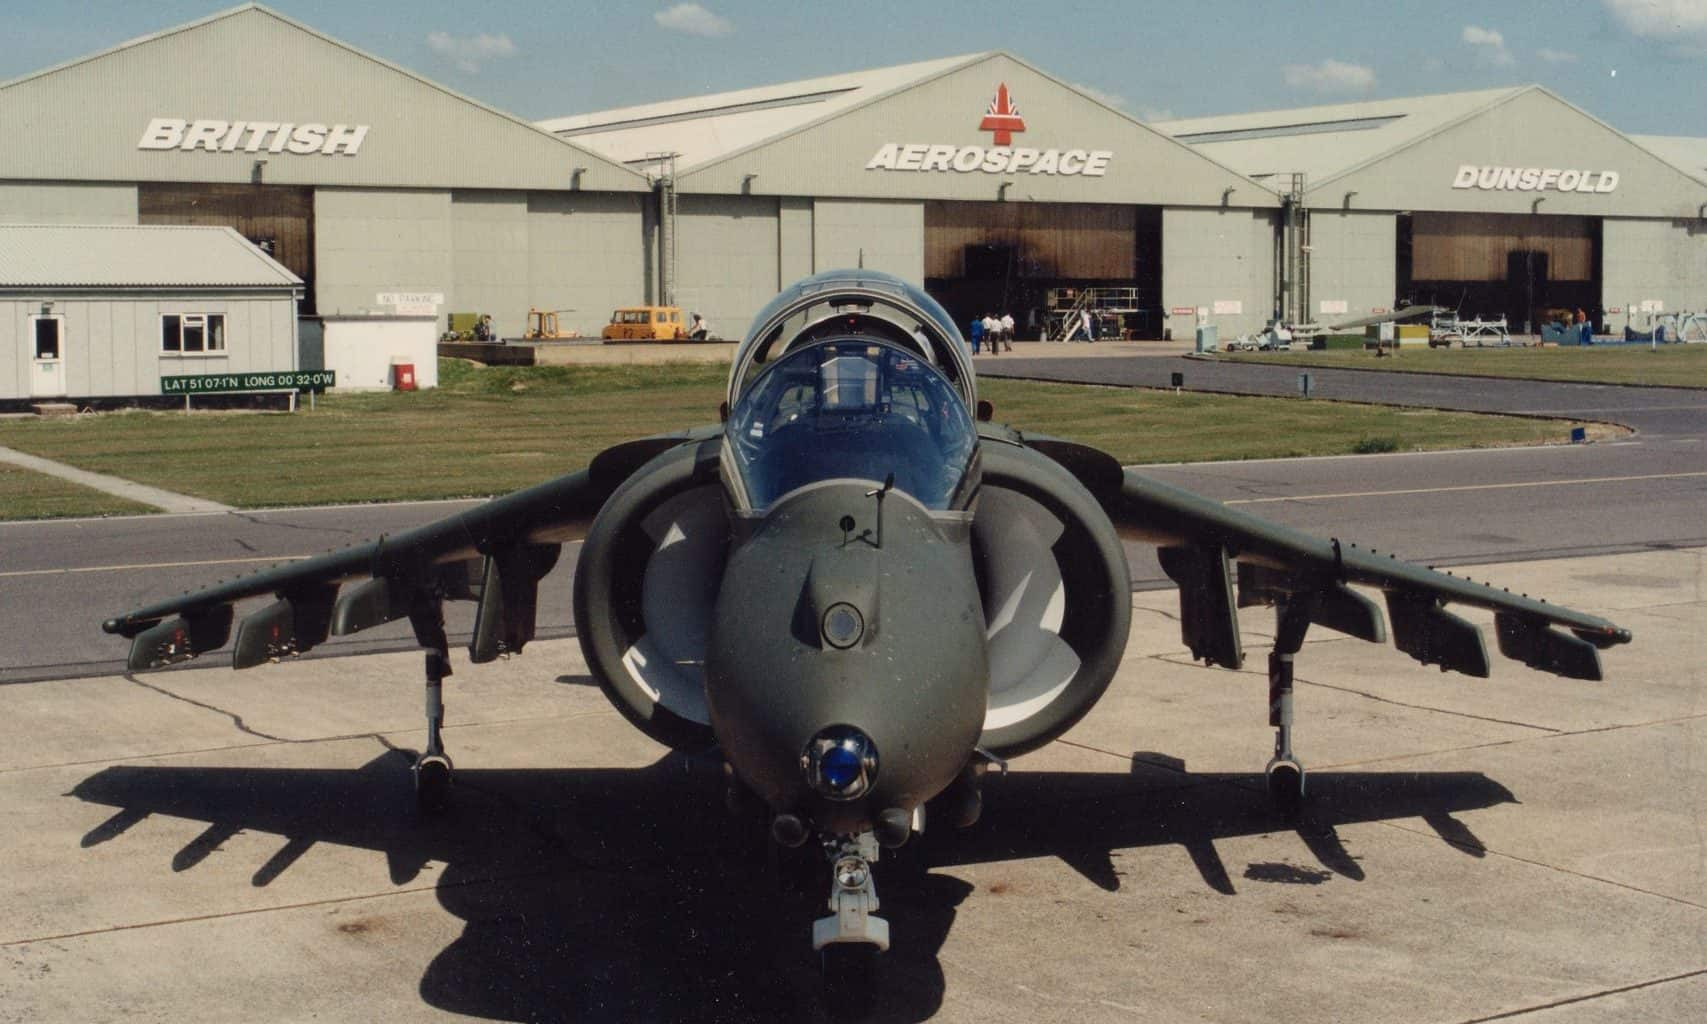 Harrier Archives - Dunsfold Airfield History Society